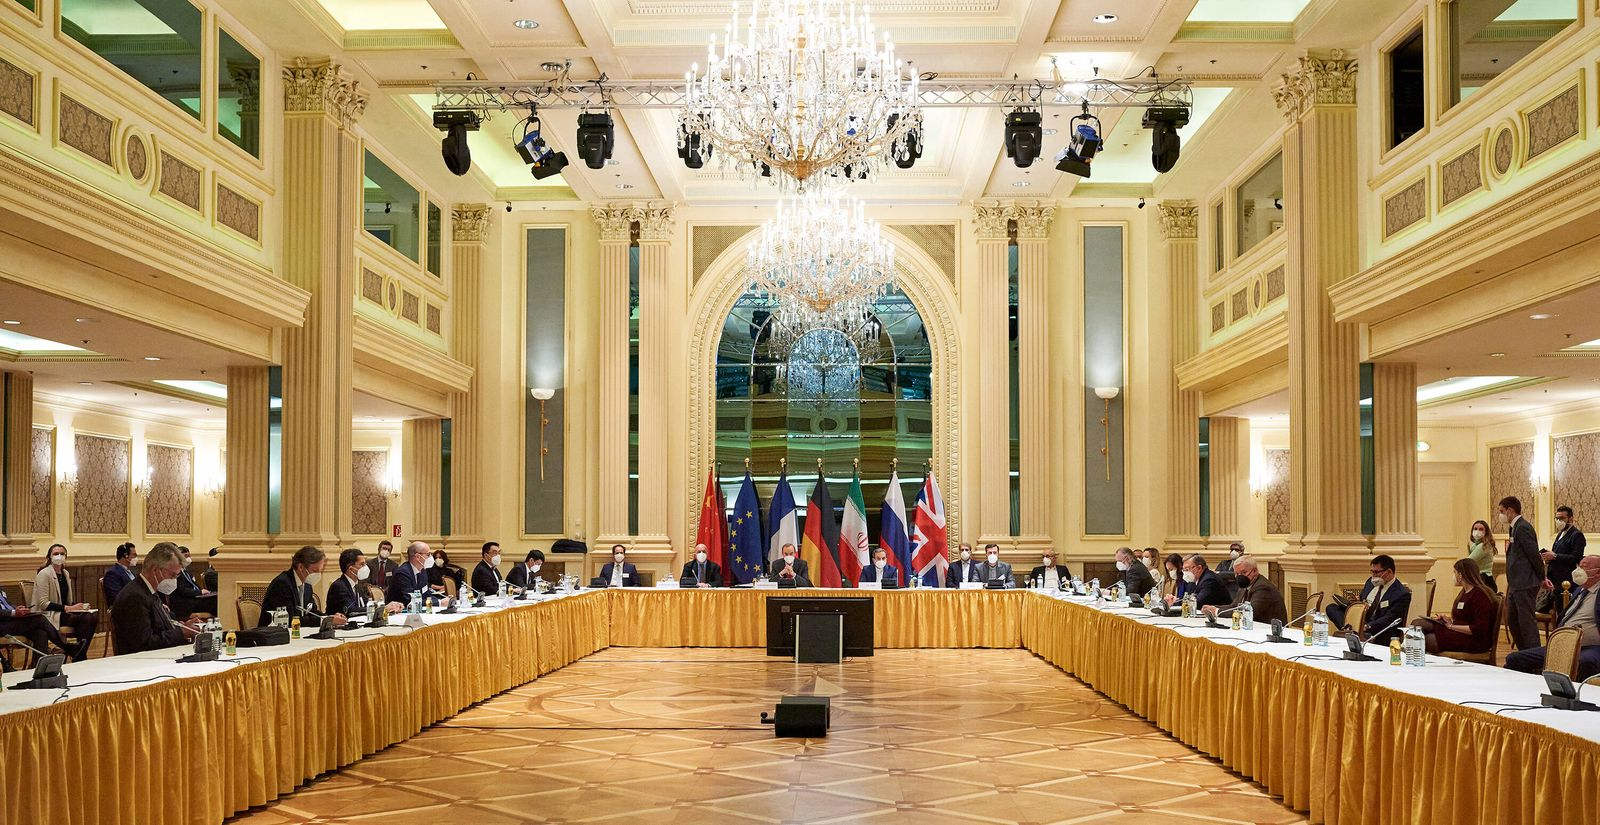 (210407) -- VIENNA, April 7, 2021 -- Photo taken on April 6, 2021 shows a meeting of the Joint Commission of the Joint